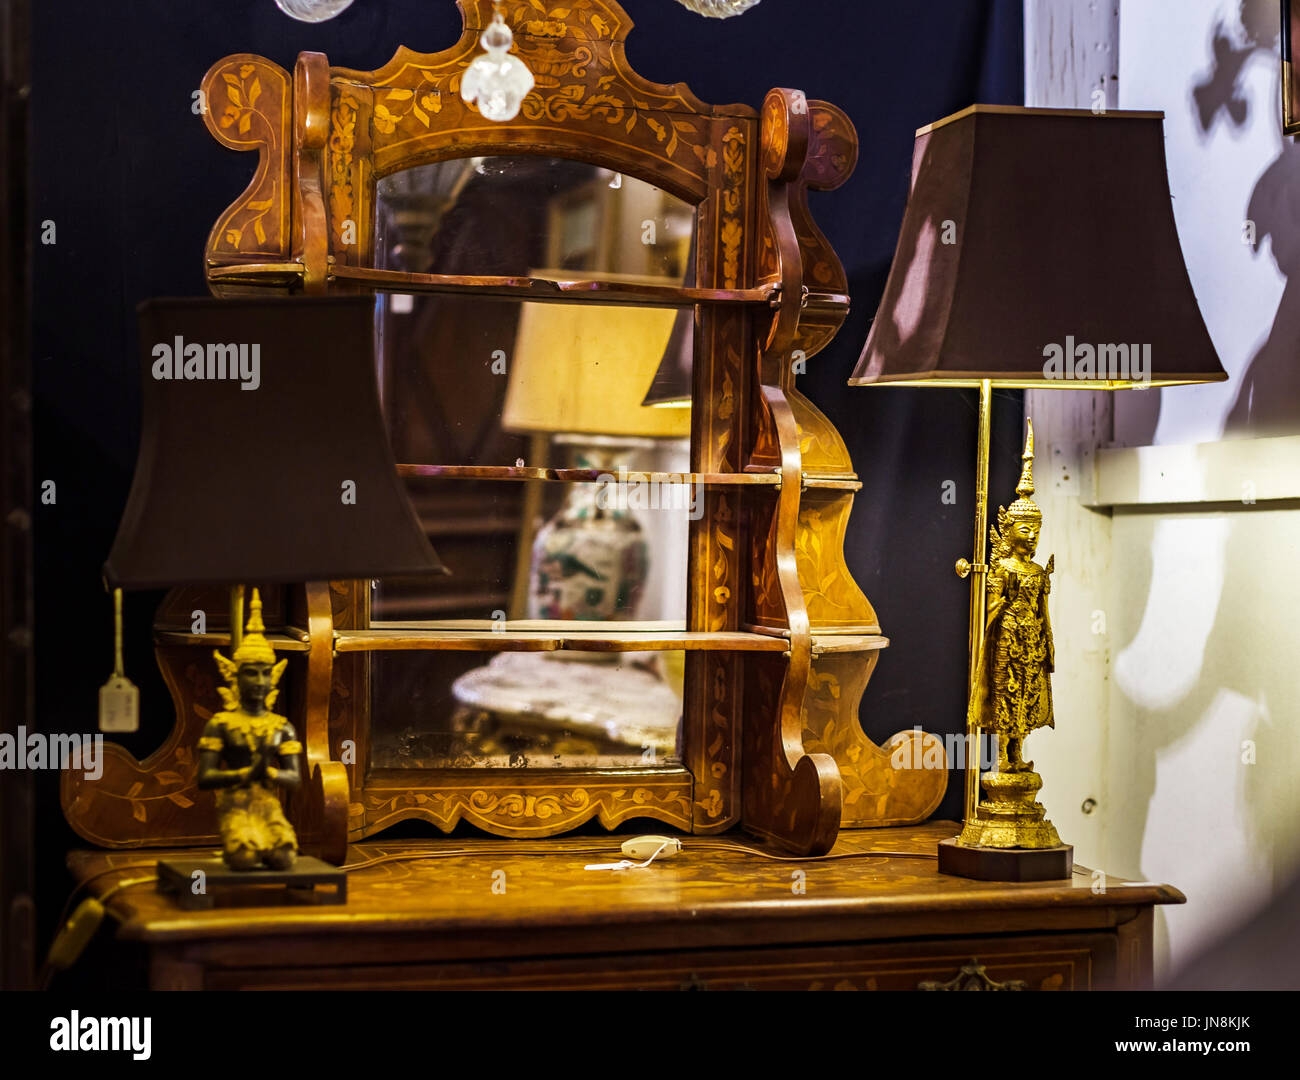 Old Vintage Furniture In Antique Shop Bruxelles Belgium Stock Photo Alamy